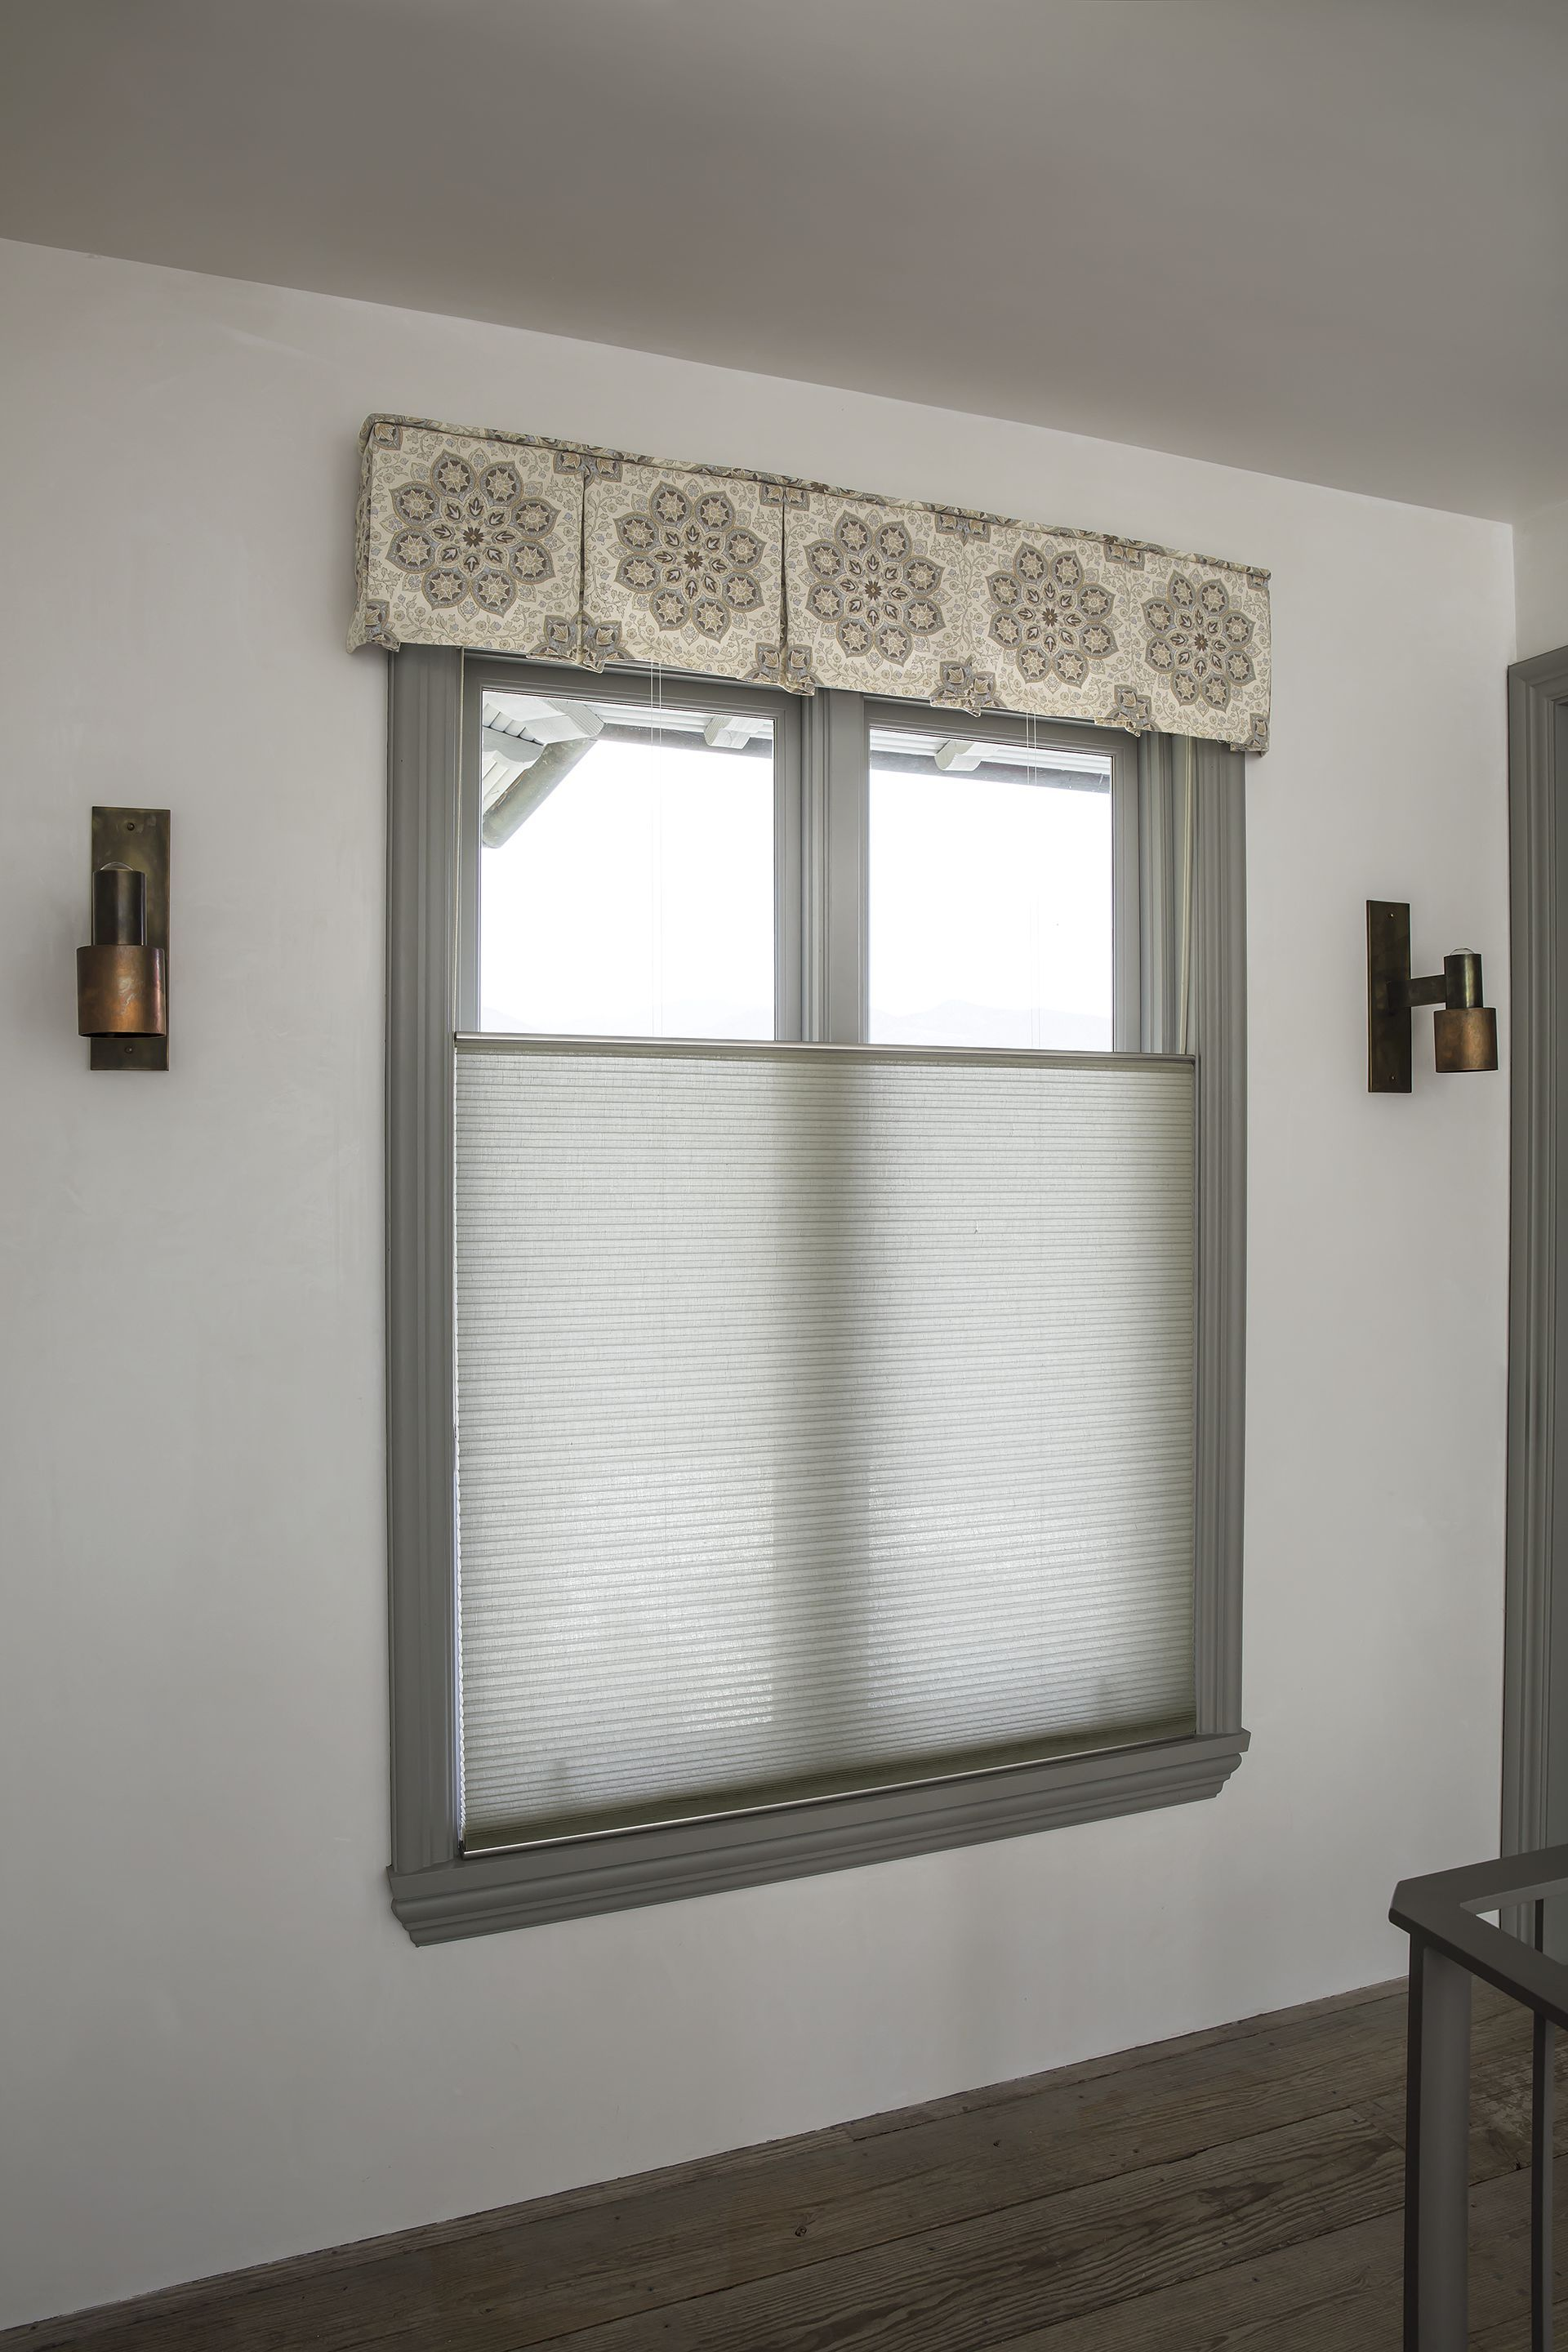 living room window valance ideas%0A Tailored Cornice in Talia  Stone       Luxe Linen Petite Cell Honeycomb  Shades in Titanium